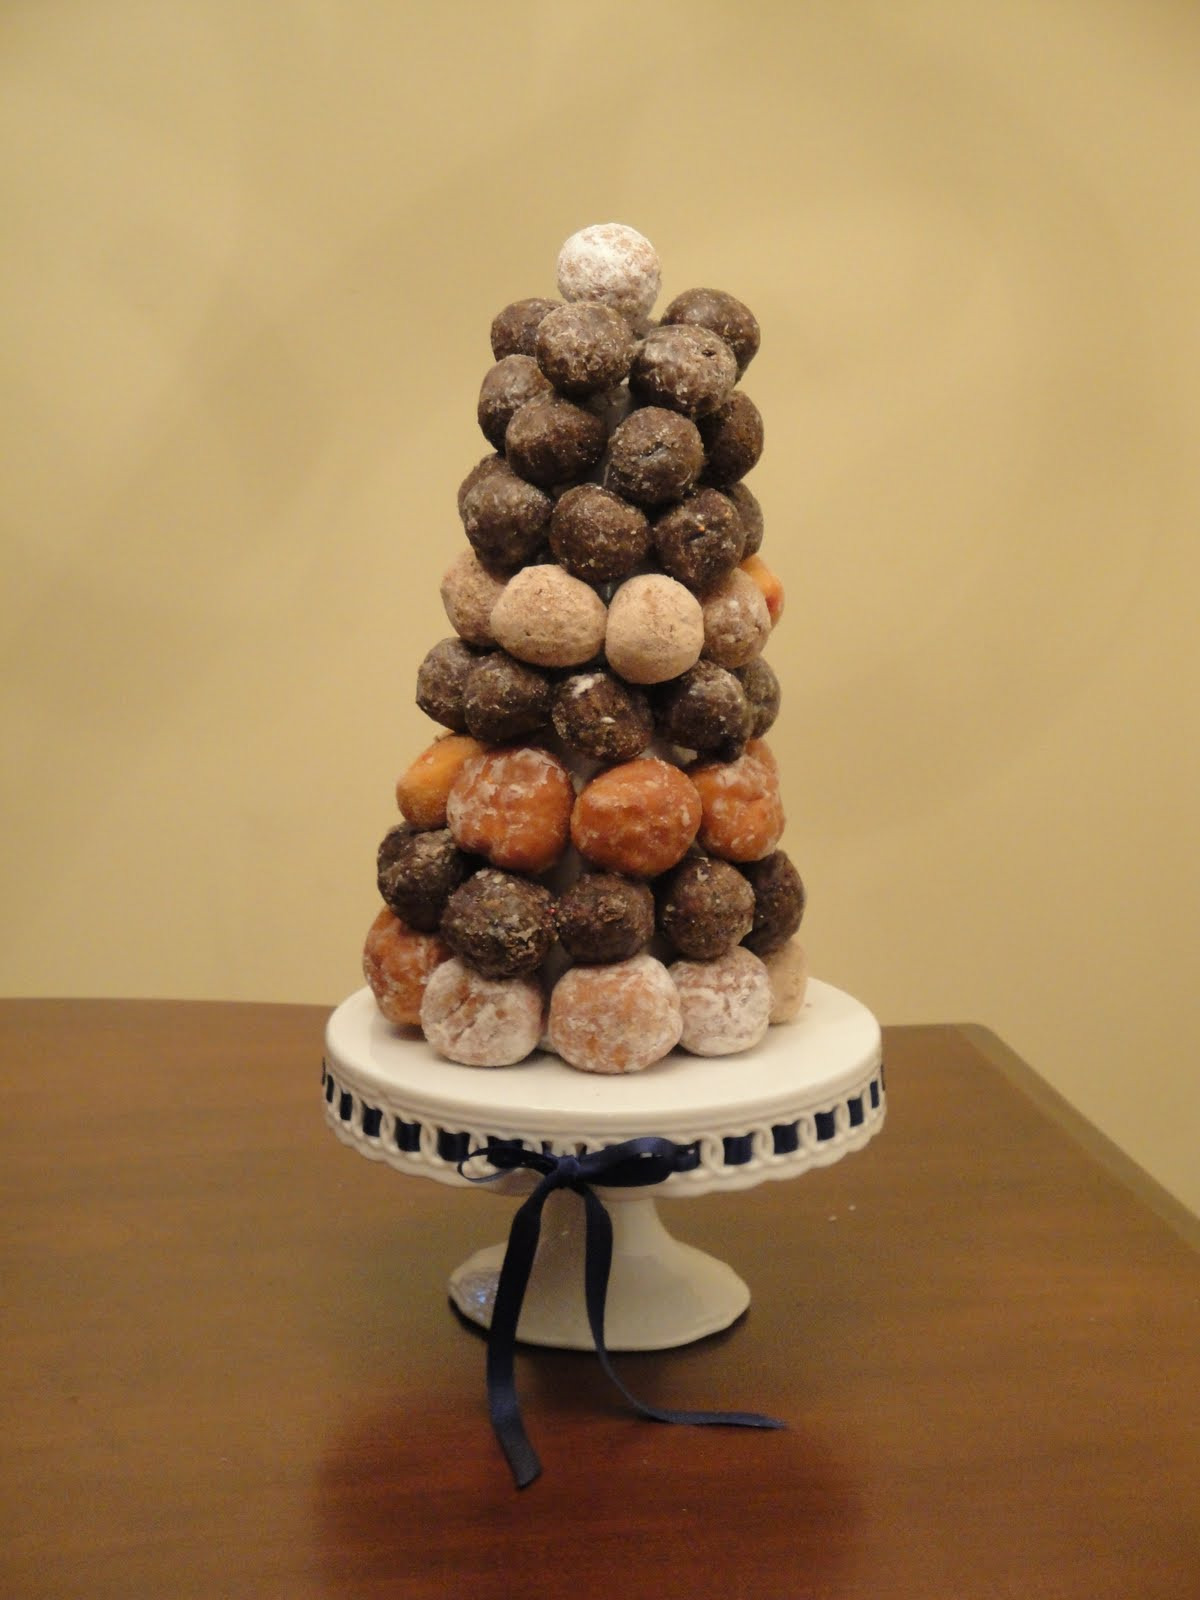 Wildflowers in the Country Donut hole cake